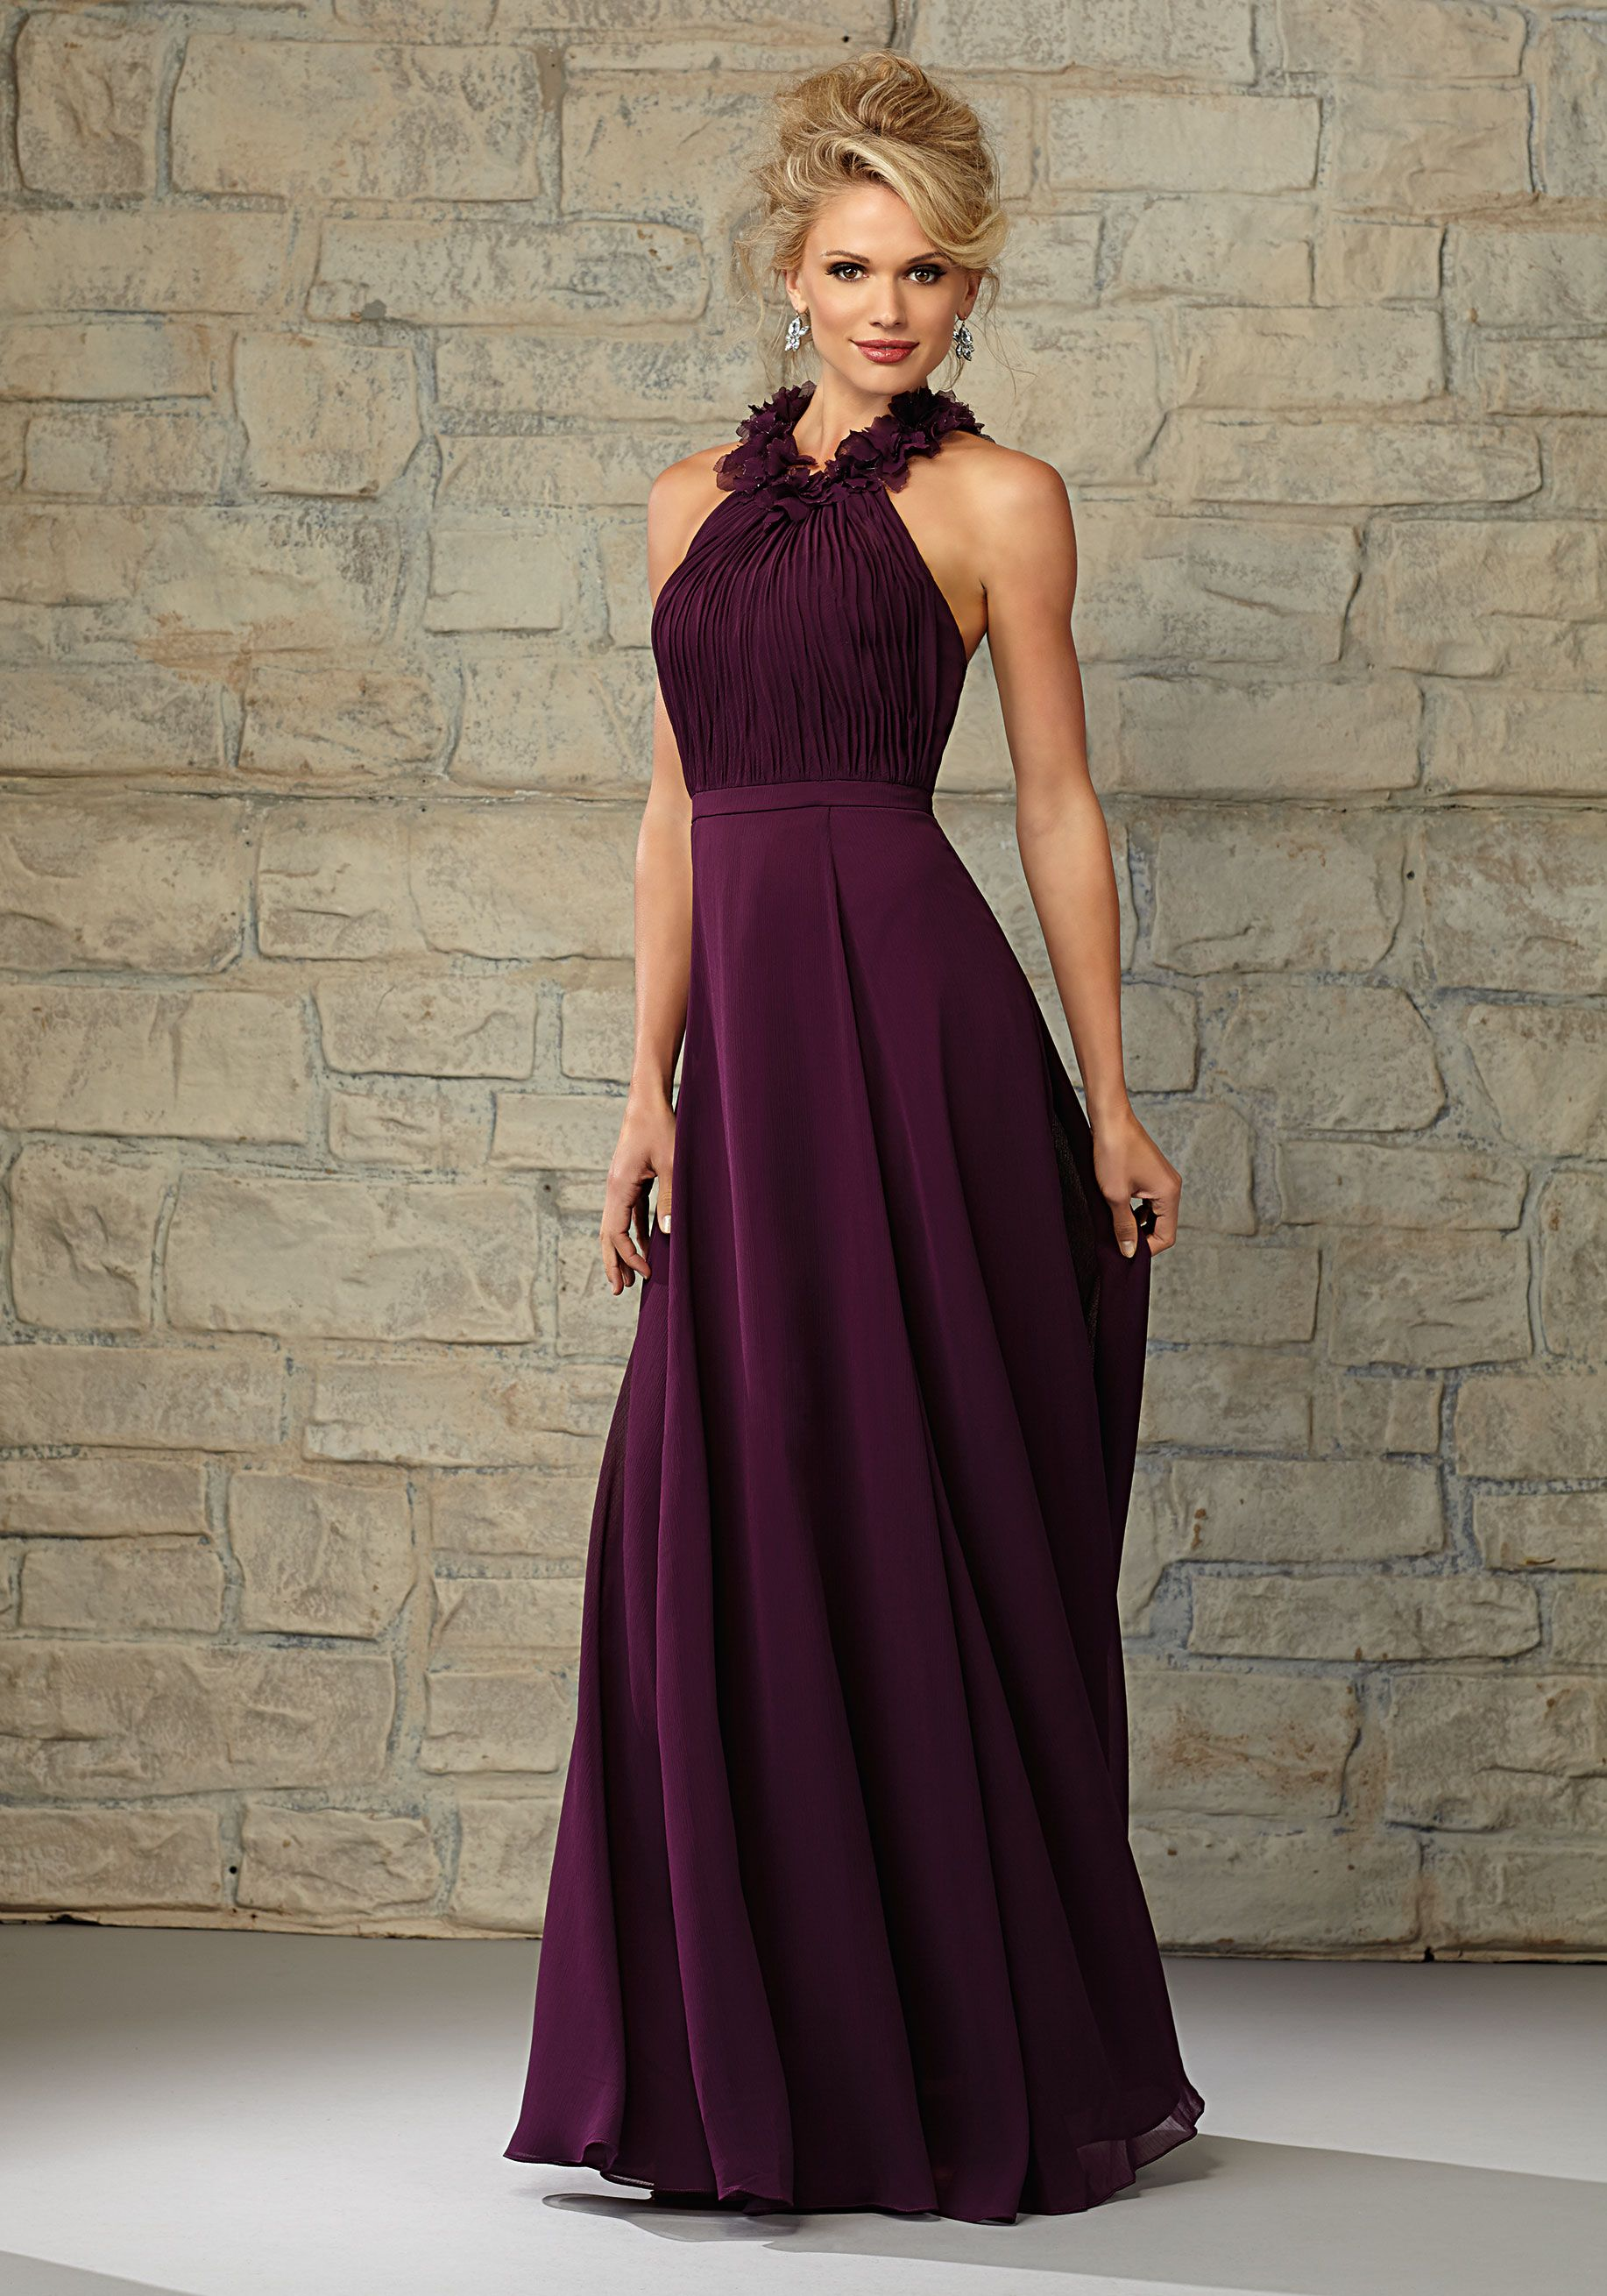 Ruffled round neck luxe chiffon bridesmaid dress designed by cheap of a line sleeveless halter chiffon eggplant empire ruched flowers floor length prom dressbridesmaid dress af 20456 2015 bridesmaid dresses ombrellifo Gallery